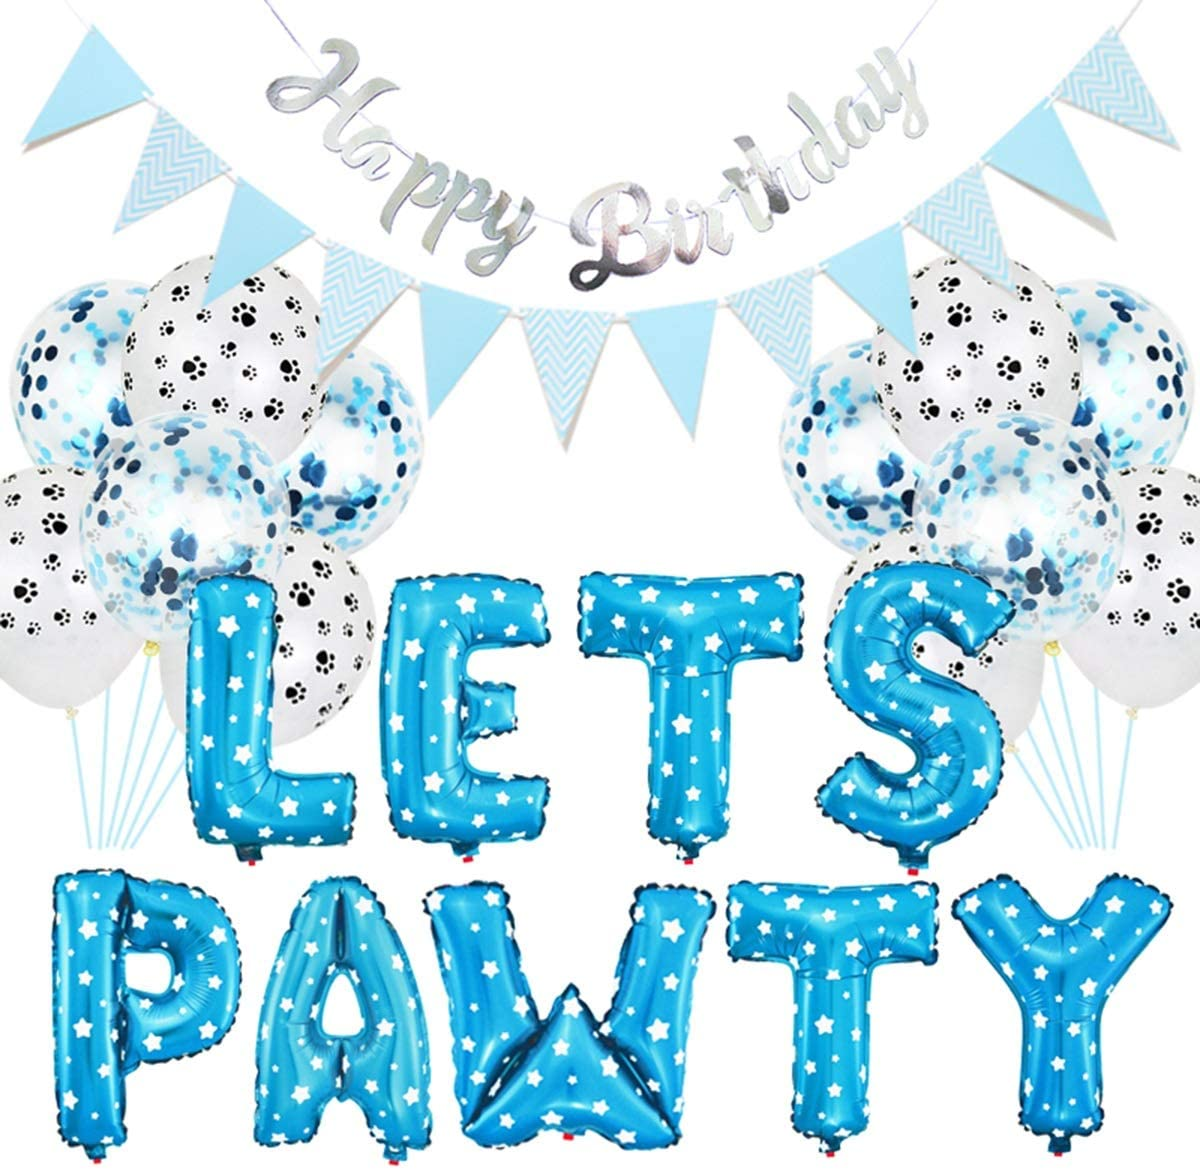 23PCS Pet Party Decoration Kit,Dog Paw Print Balloons Foil Balloons Happy Birthday Banner Lets Pawty Letters Decorations for Dog Cat Birthday Party Supplies